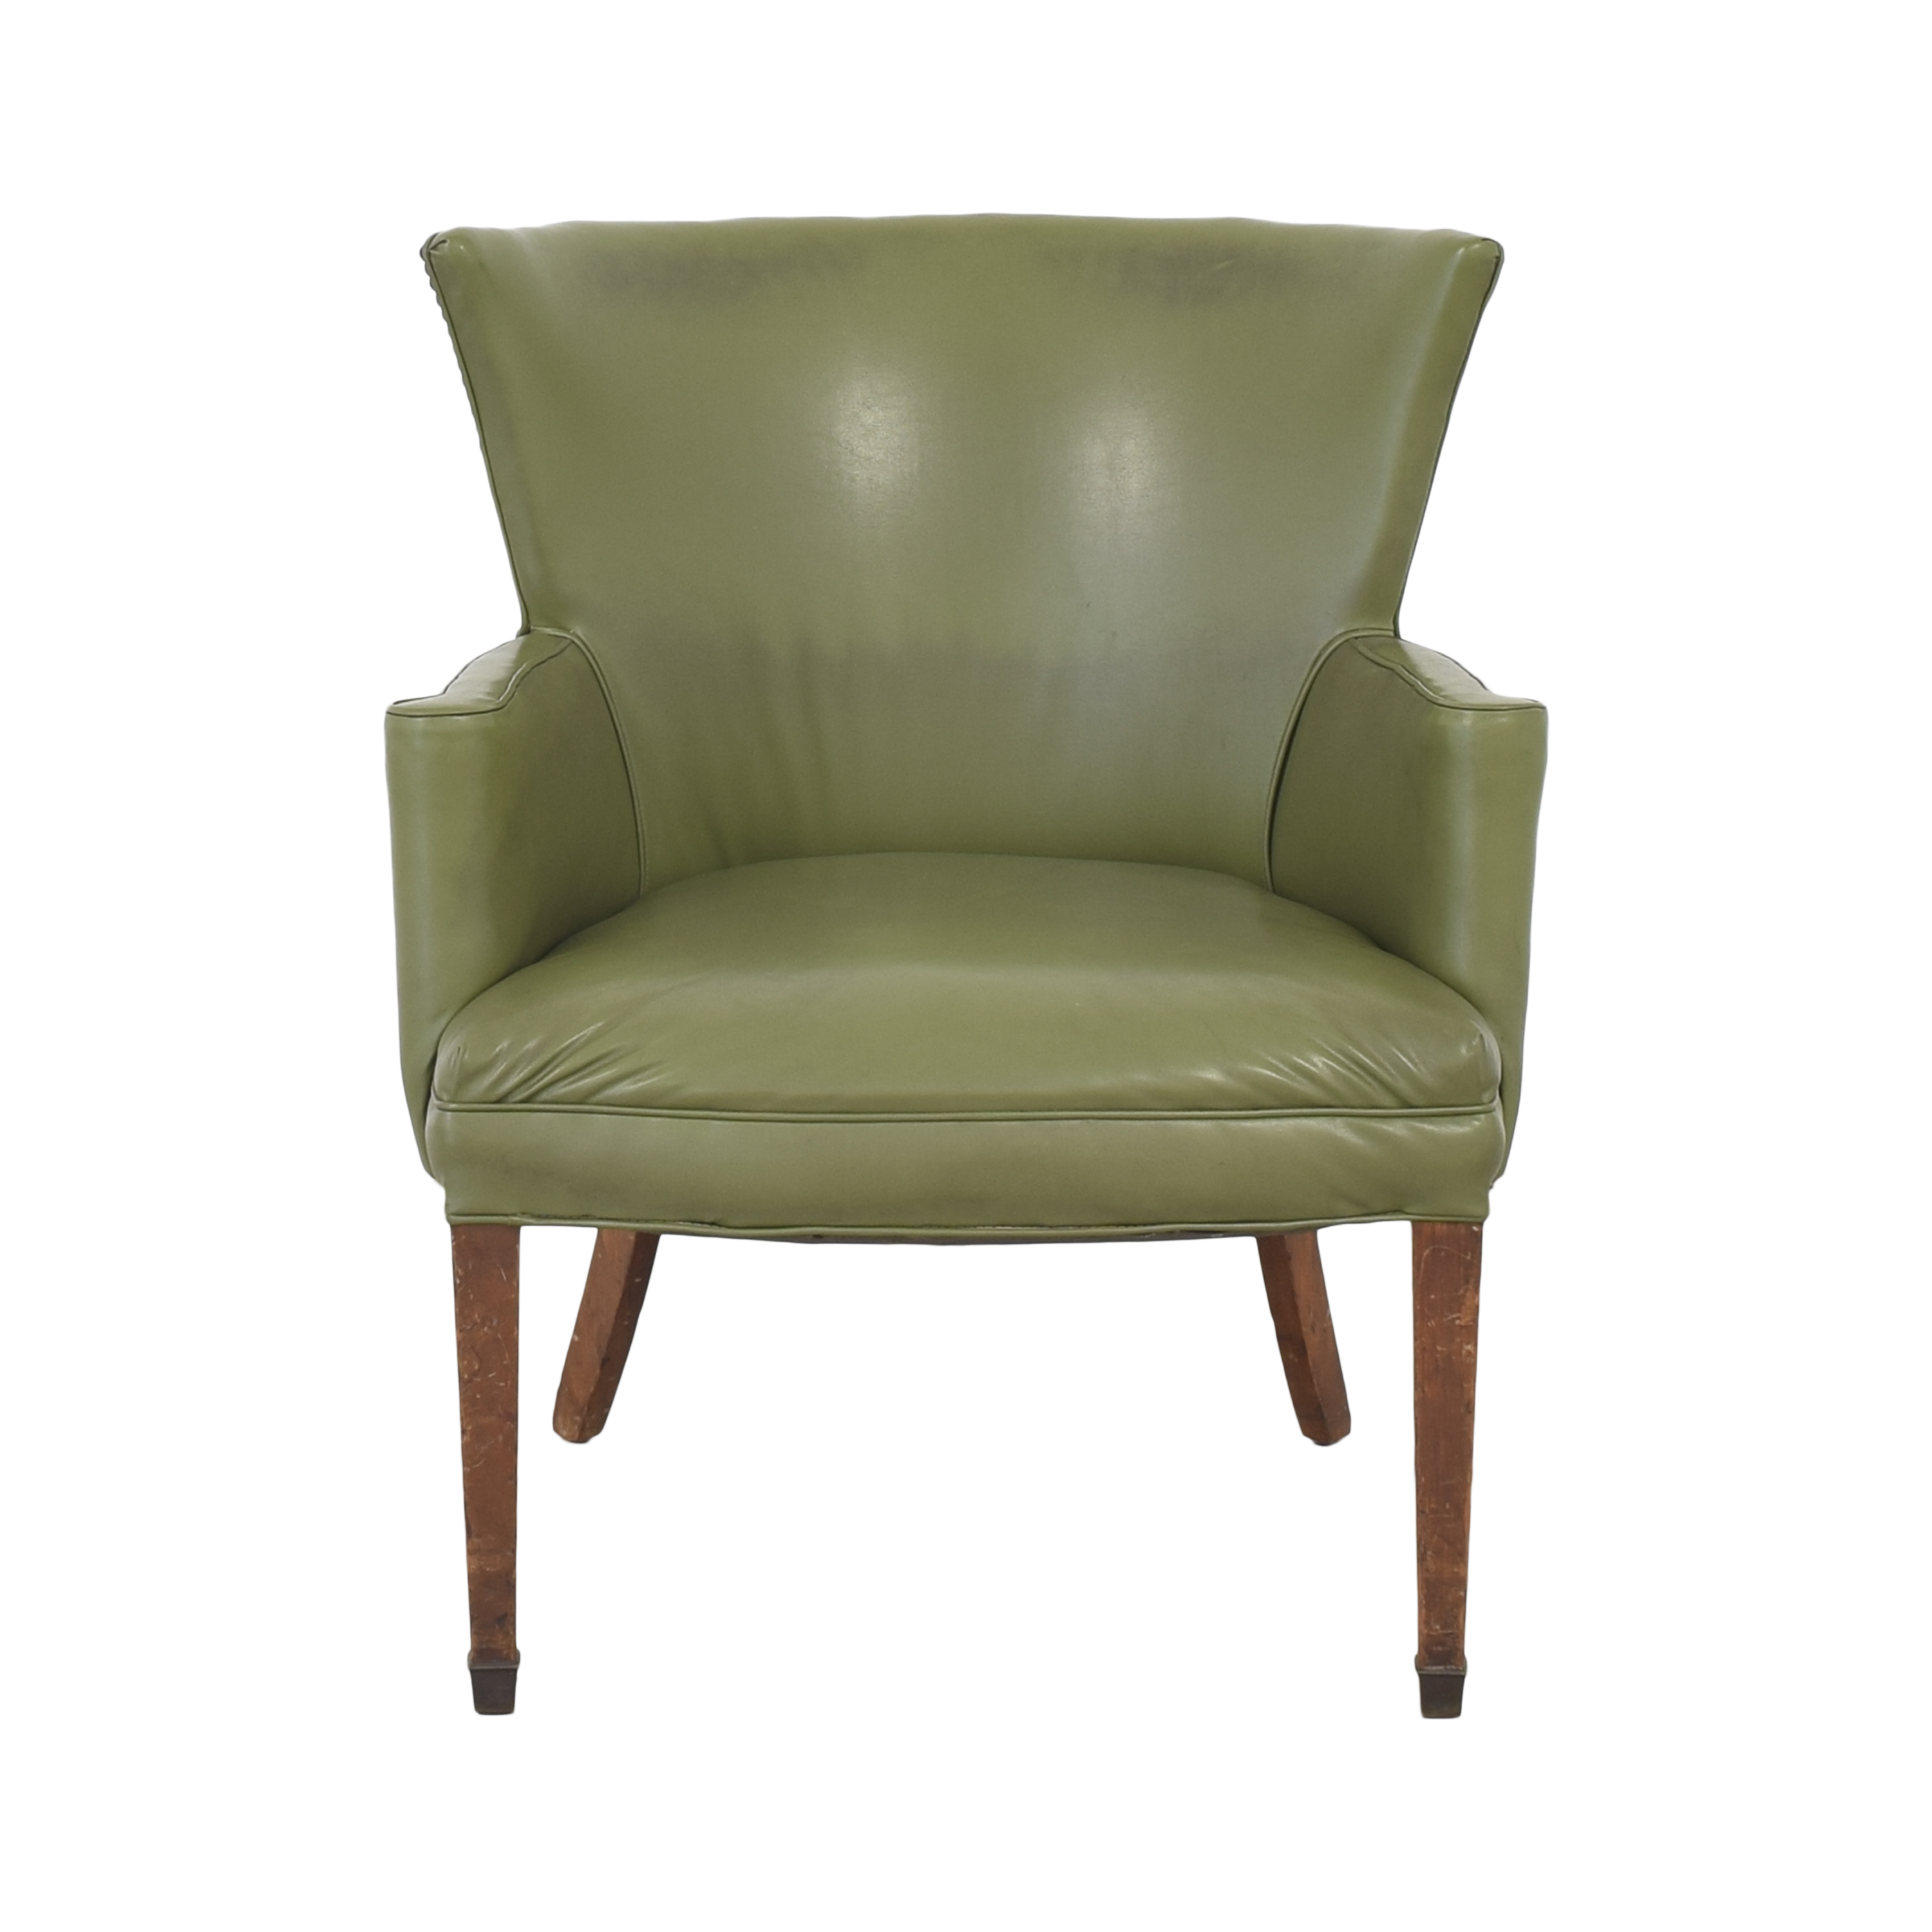 Modern Style Club Chair for sale